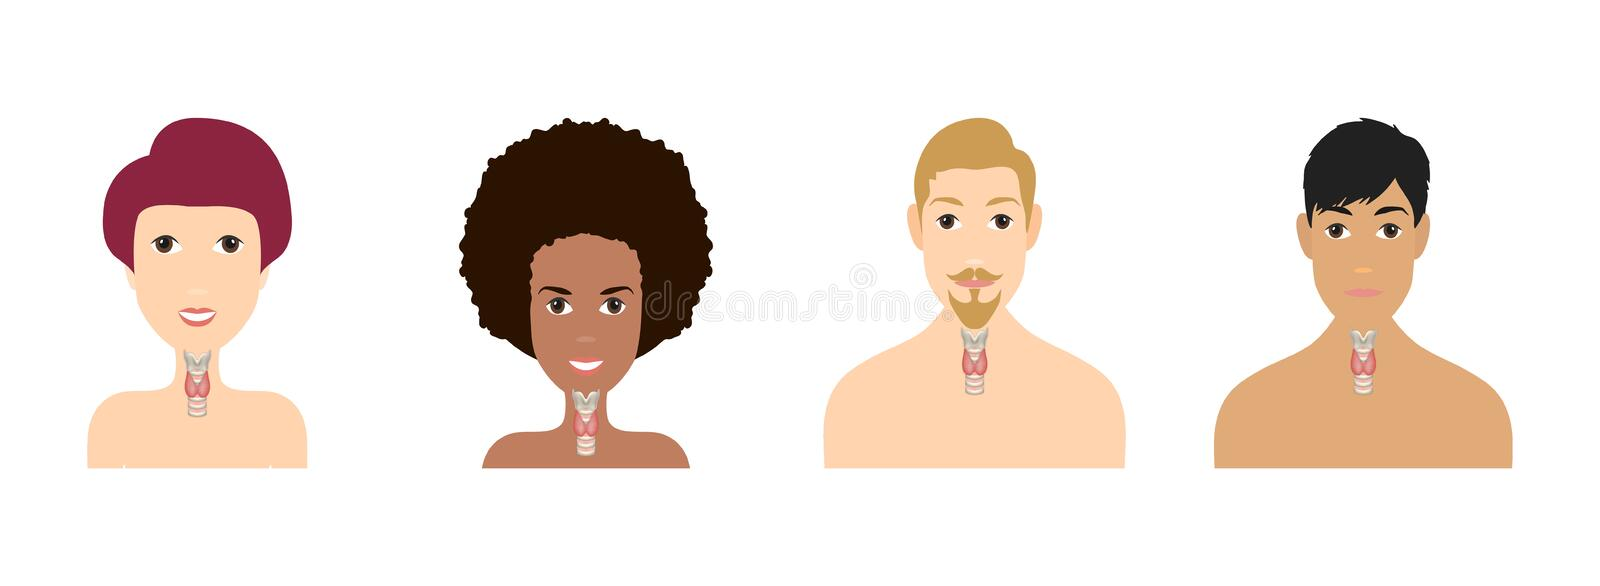 Thyroid gland and trachea scheme shown on a silhouette of a men and women. Human body organs anatomy icon. Medical royalty free illustration